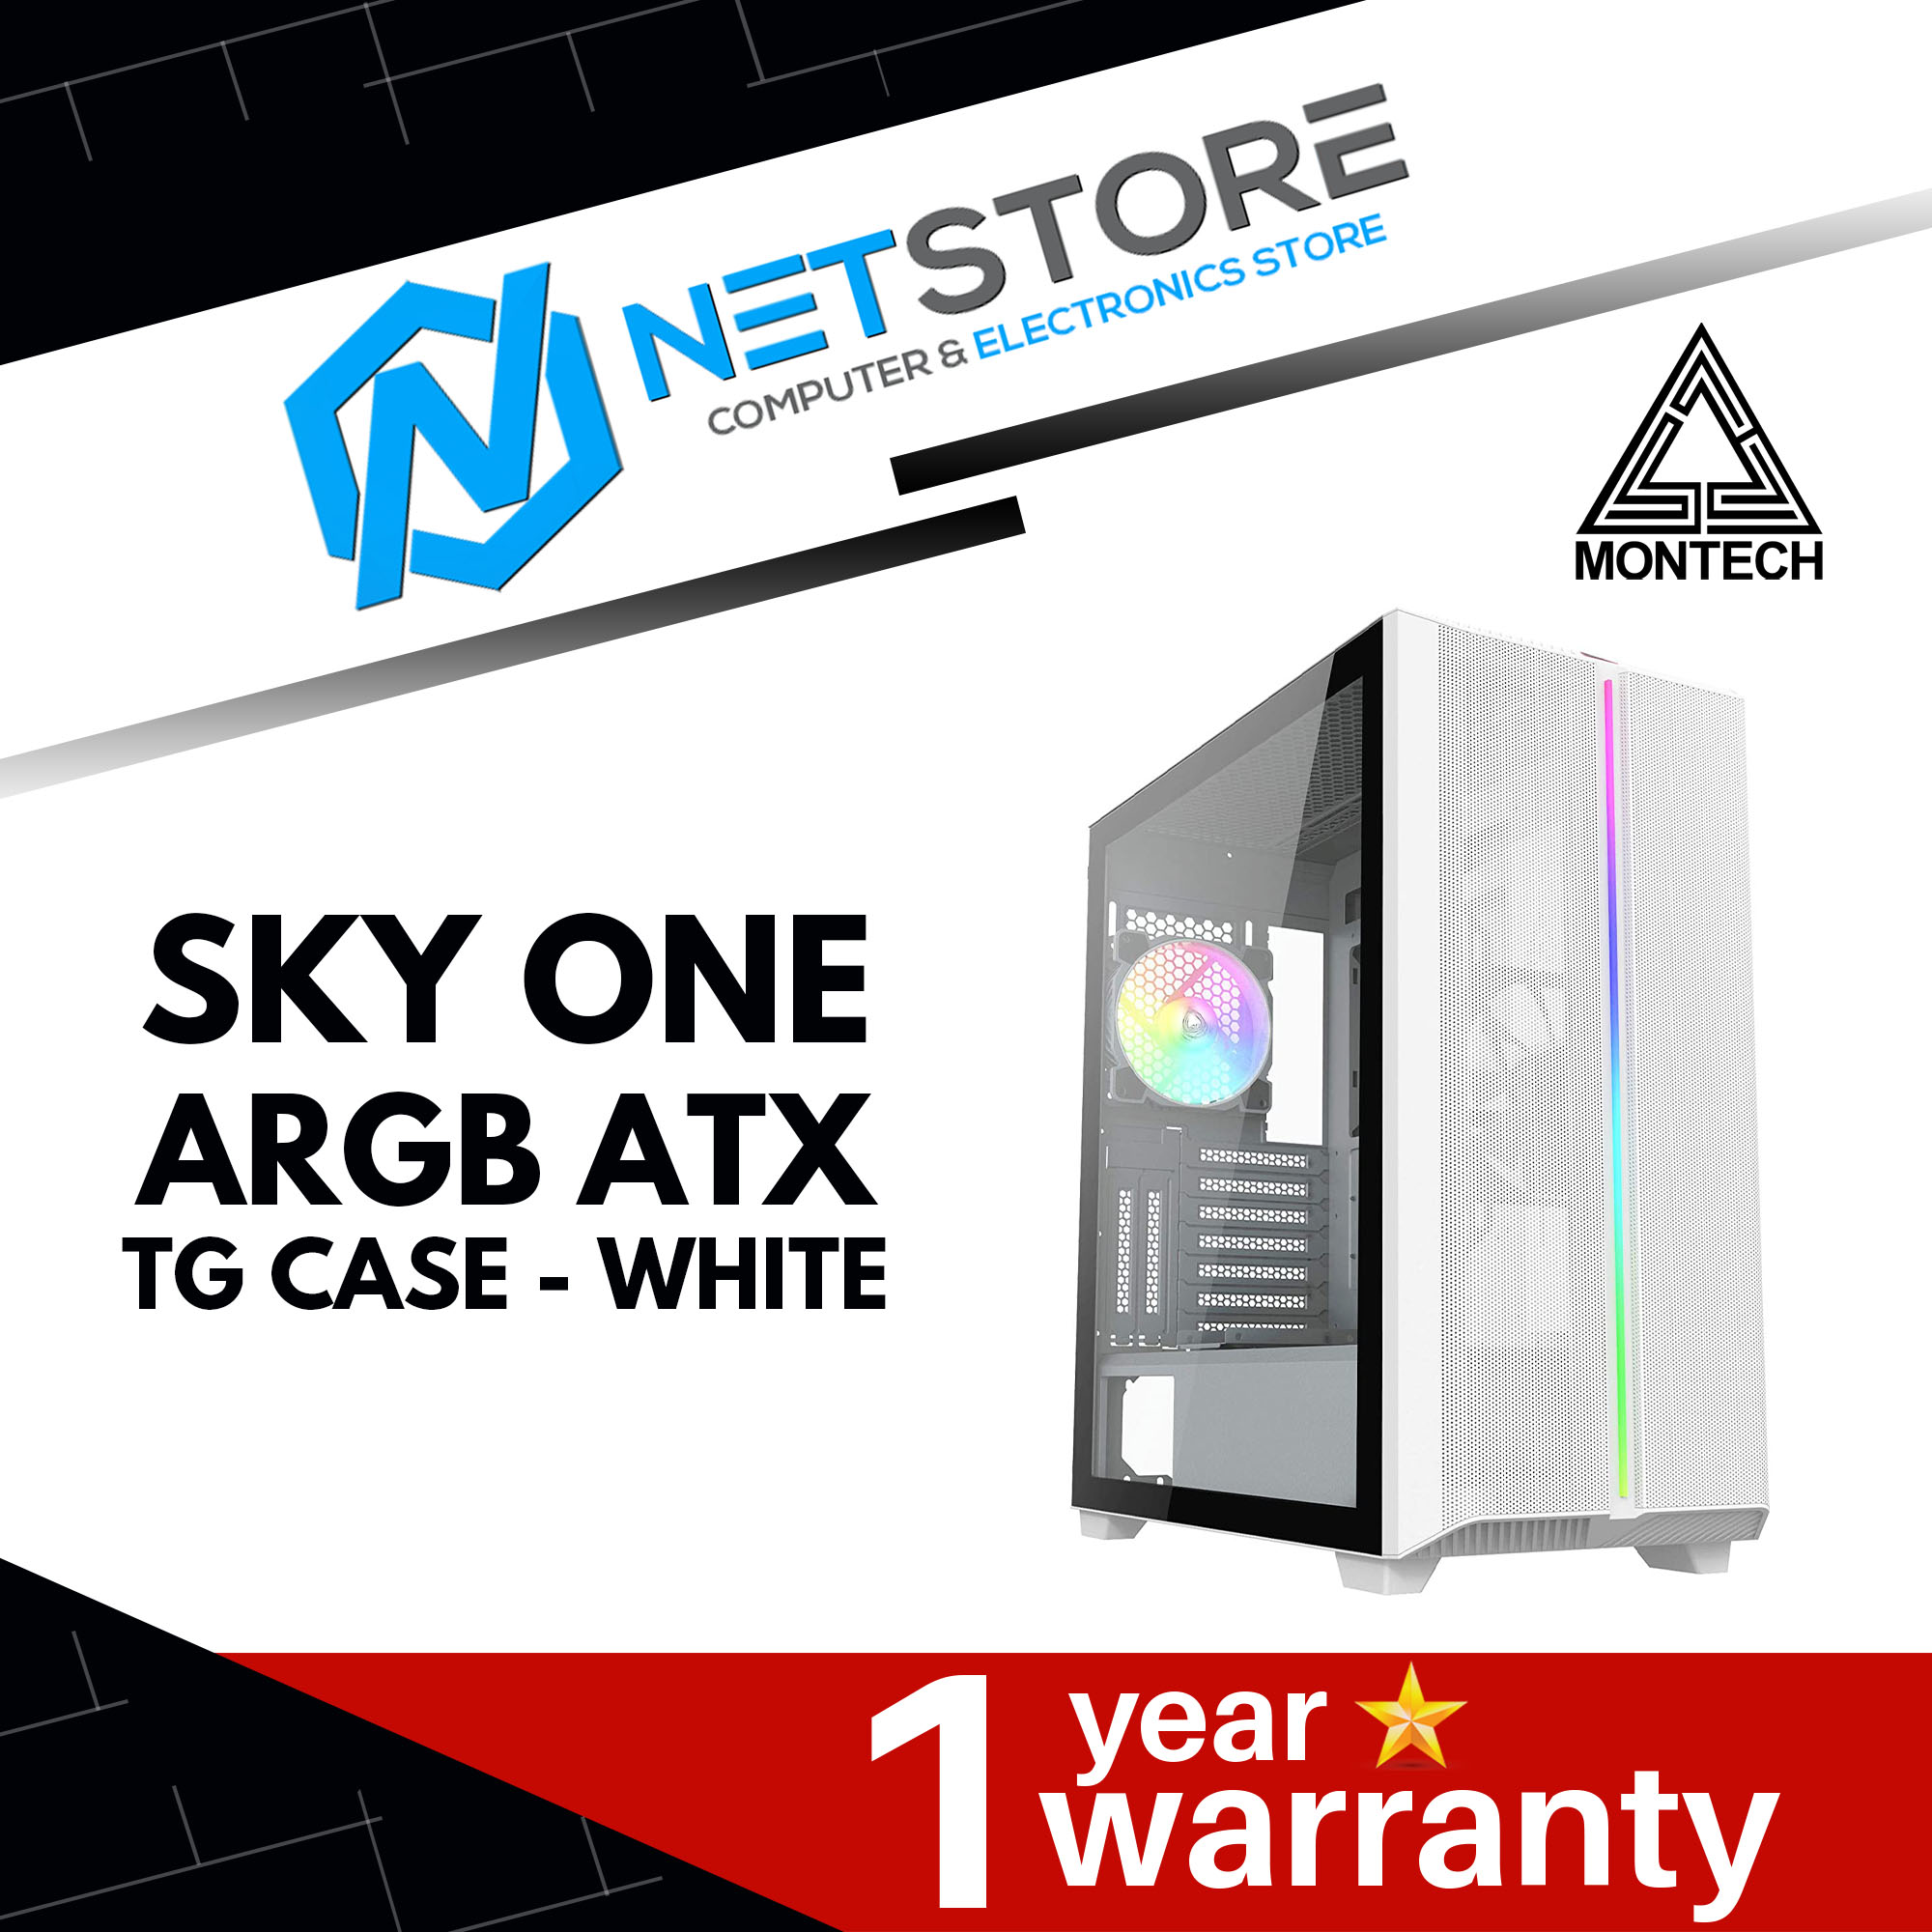 MONTECH SKY ONE HIGH-END ARGB TG ATX MID-TOWER GAMING CASE - WHITE